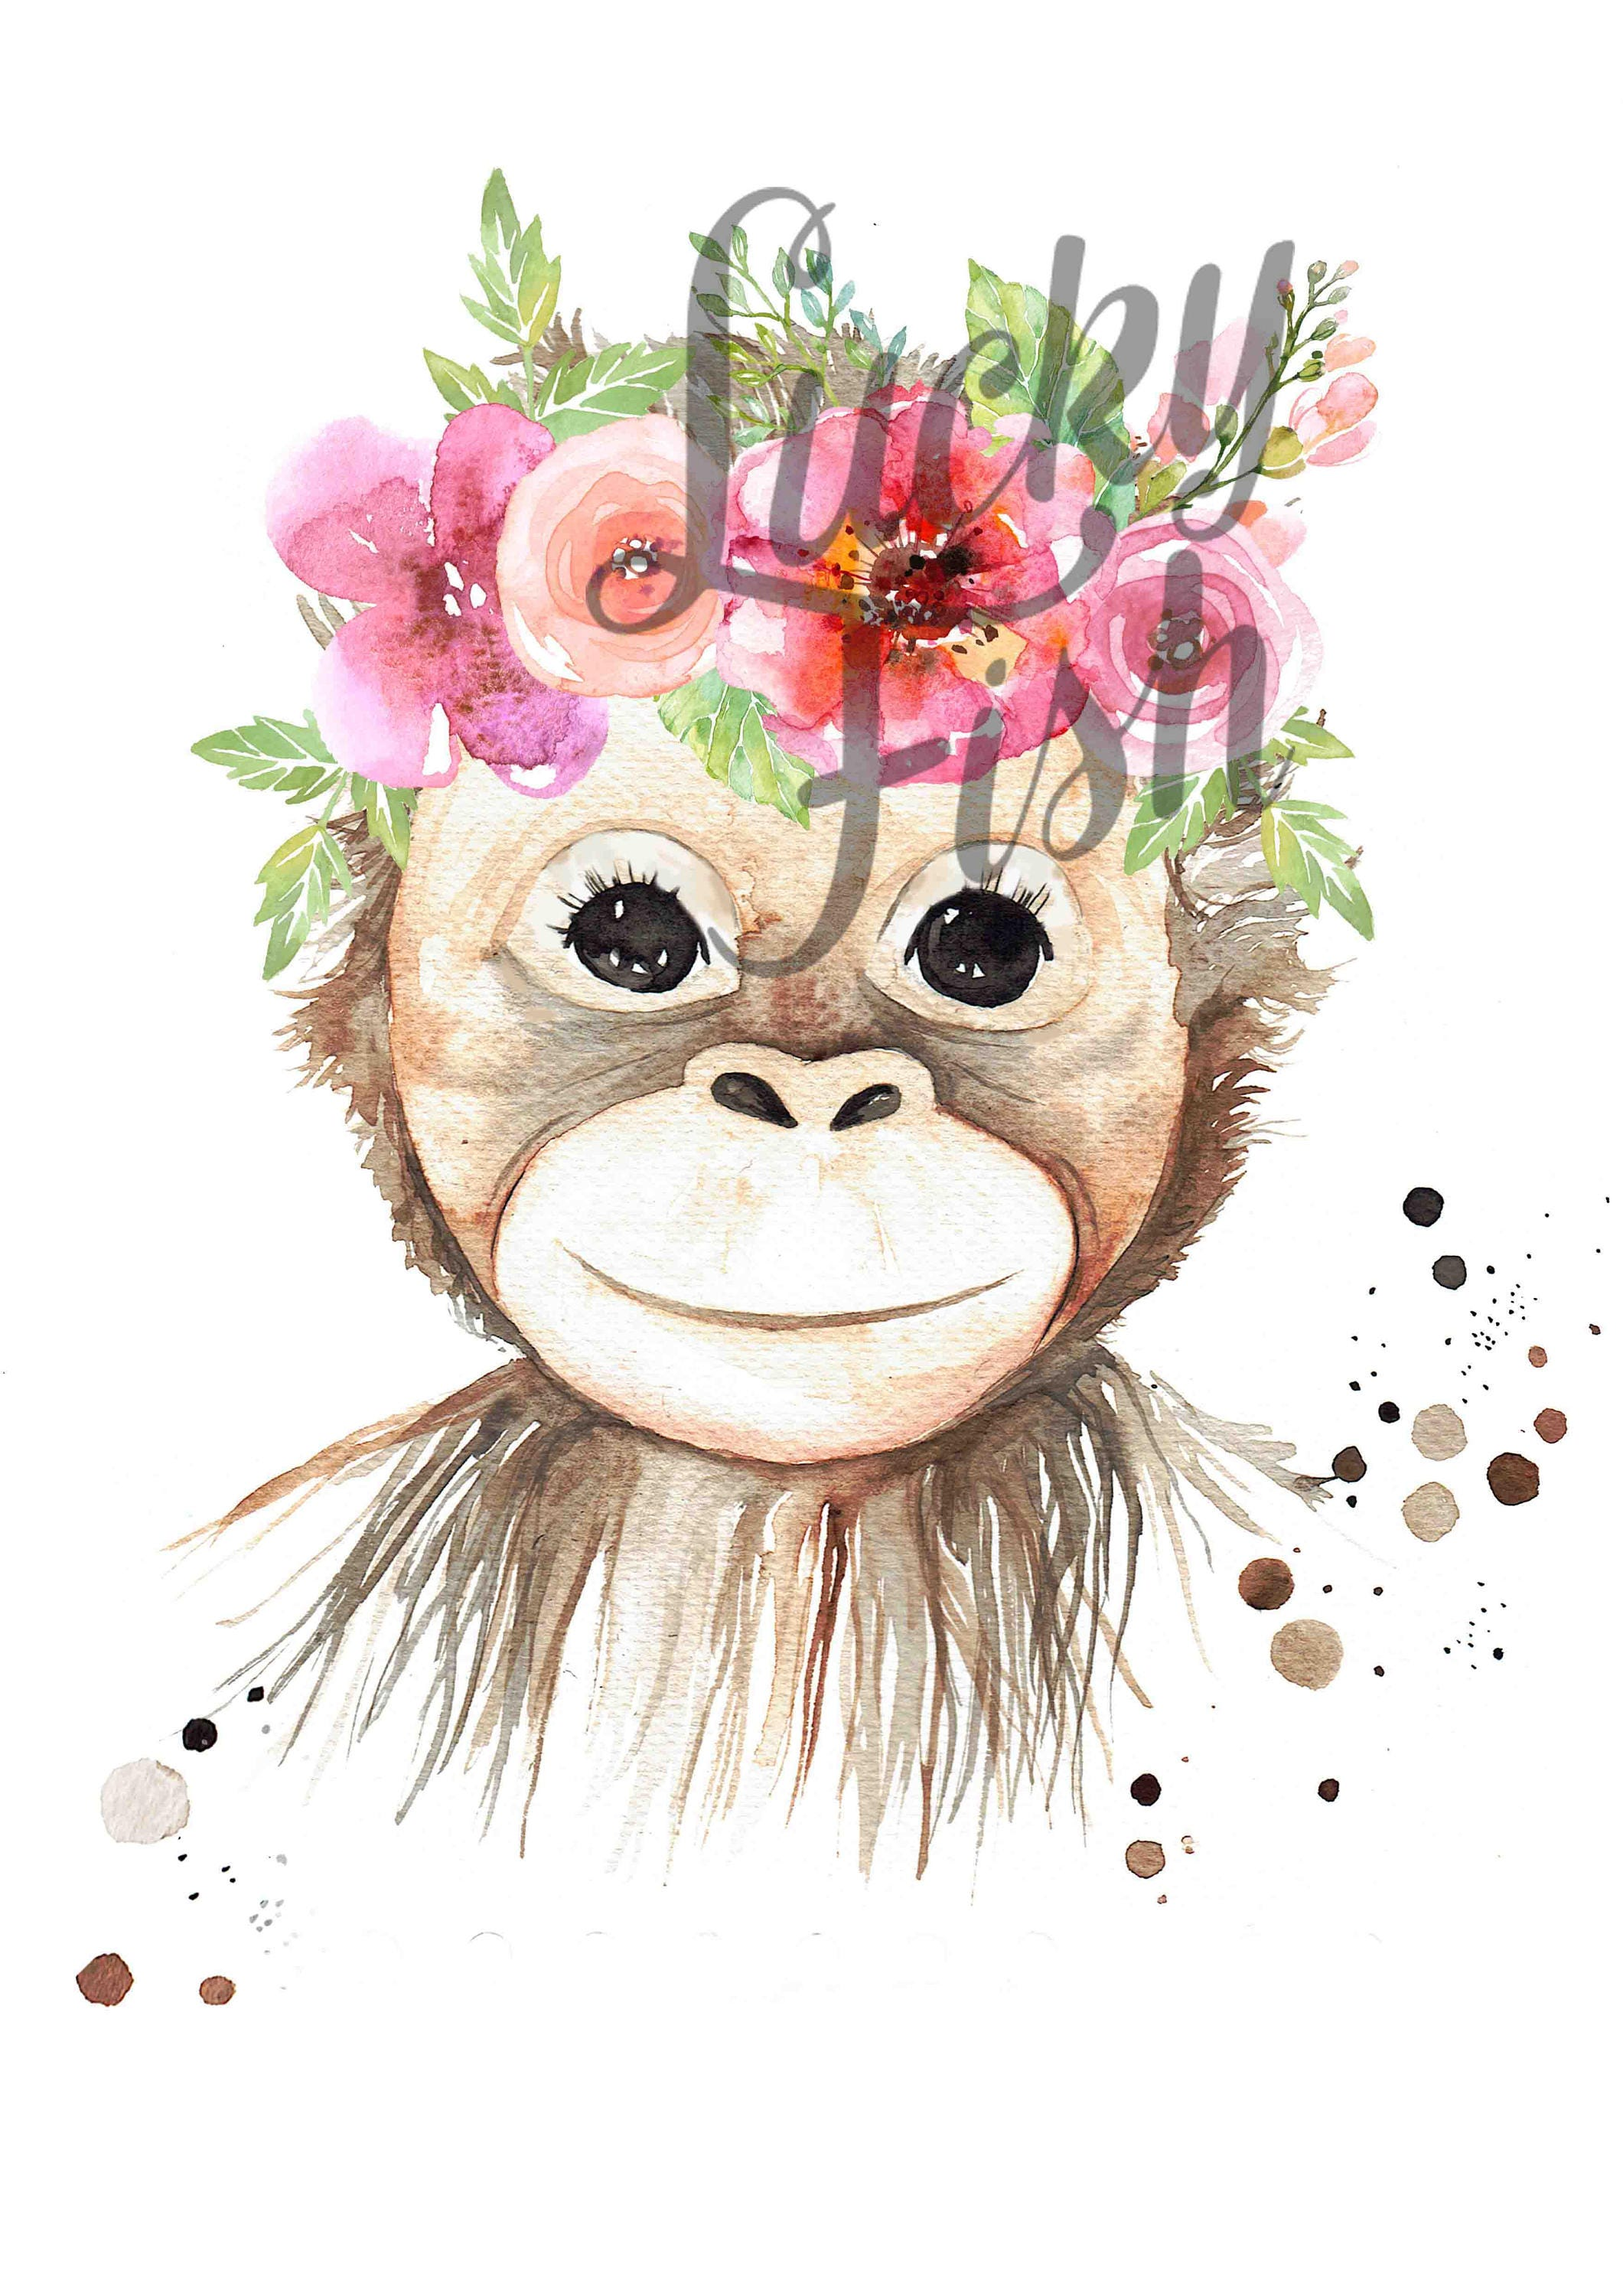 Baby Monkey With Flower Crown Print